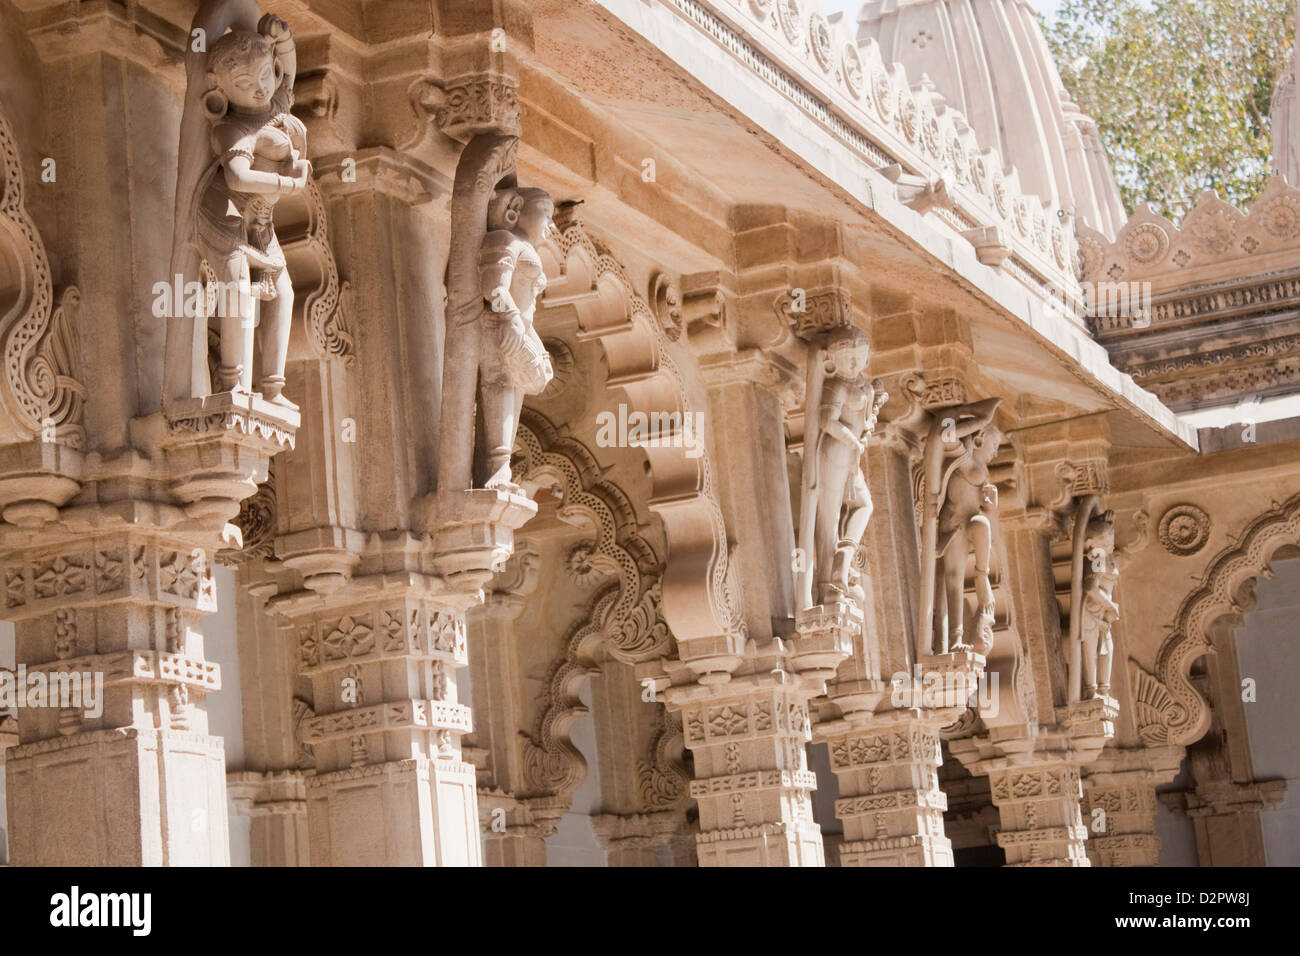 Architectural details of a temple, Swaminarayan Akshardham Temple, Ahmedabad, Gujarat, India - Stock Image